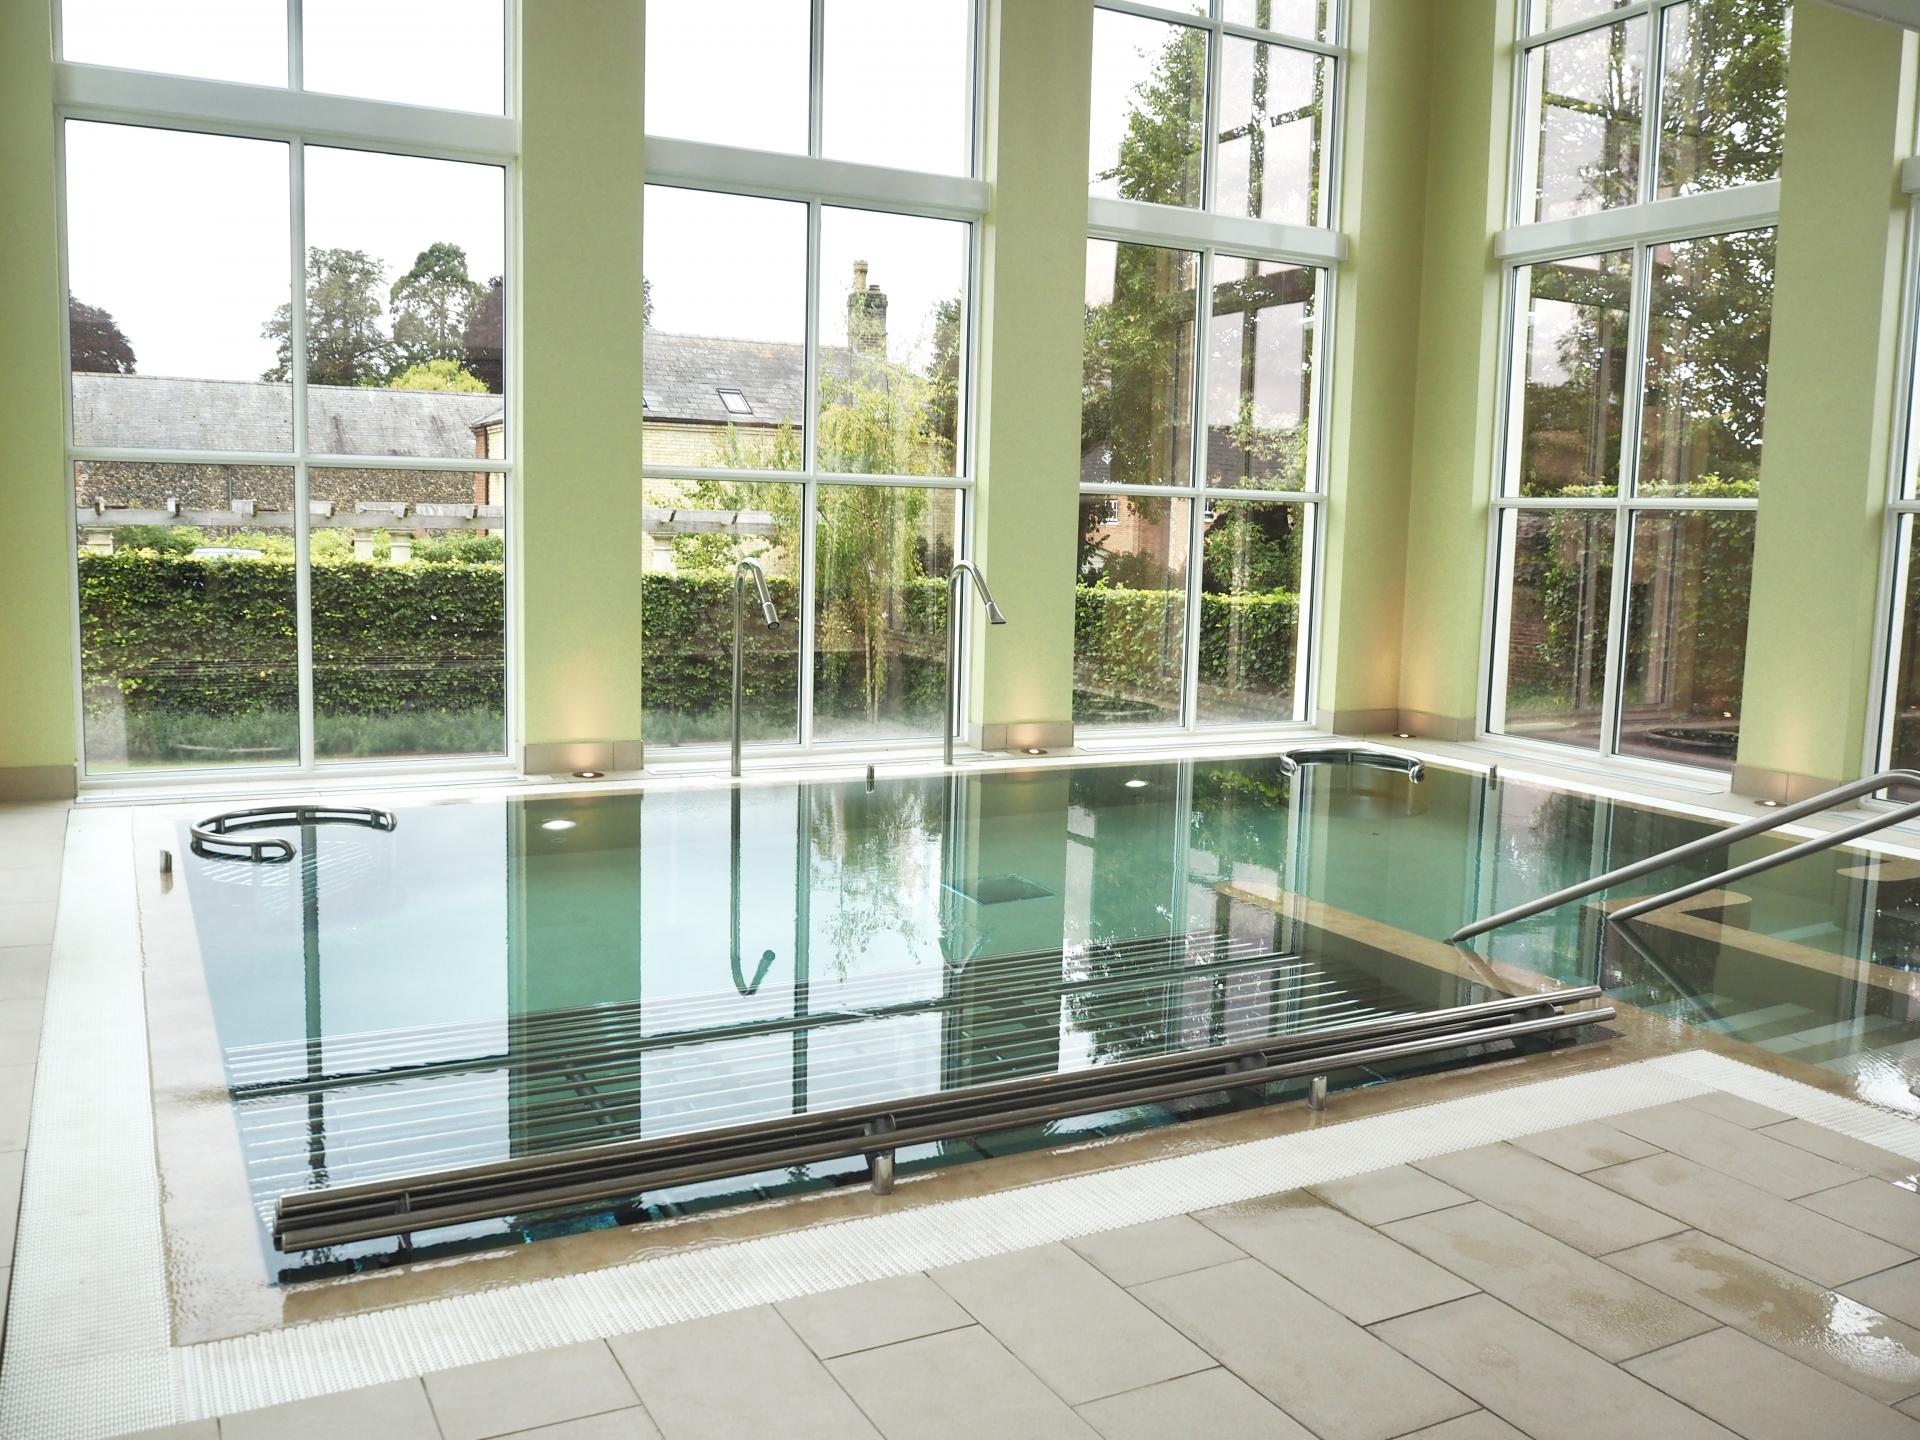 bedford lodge spa pool